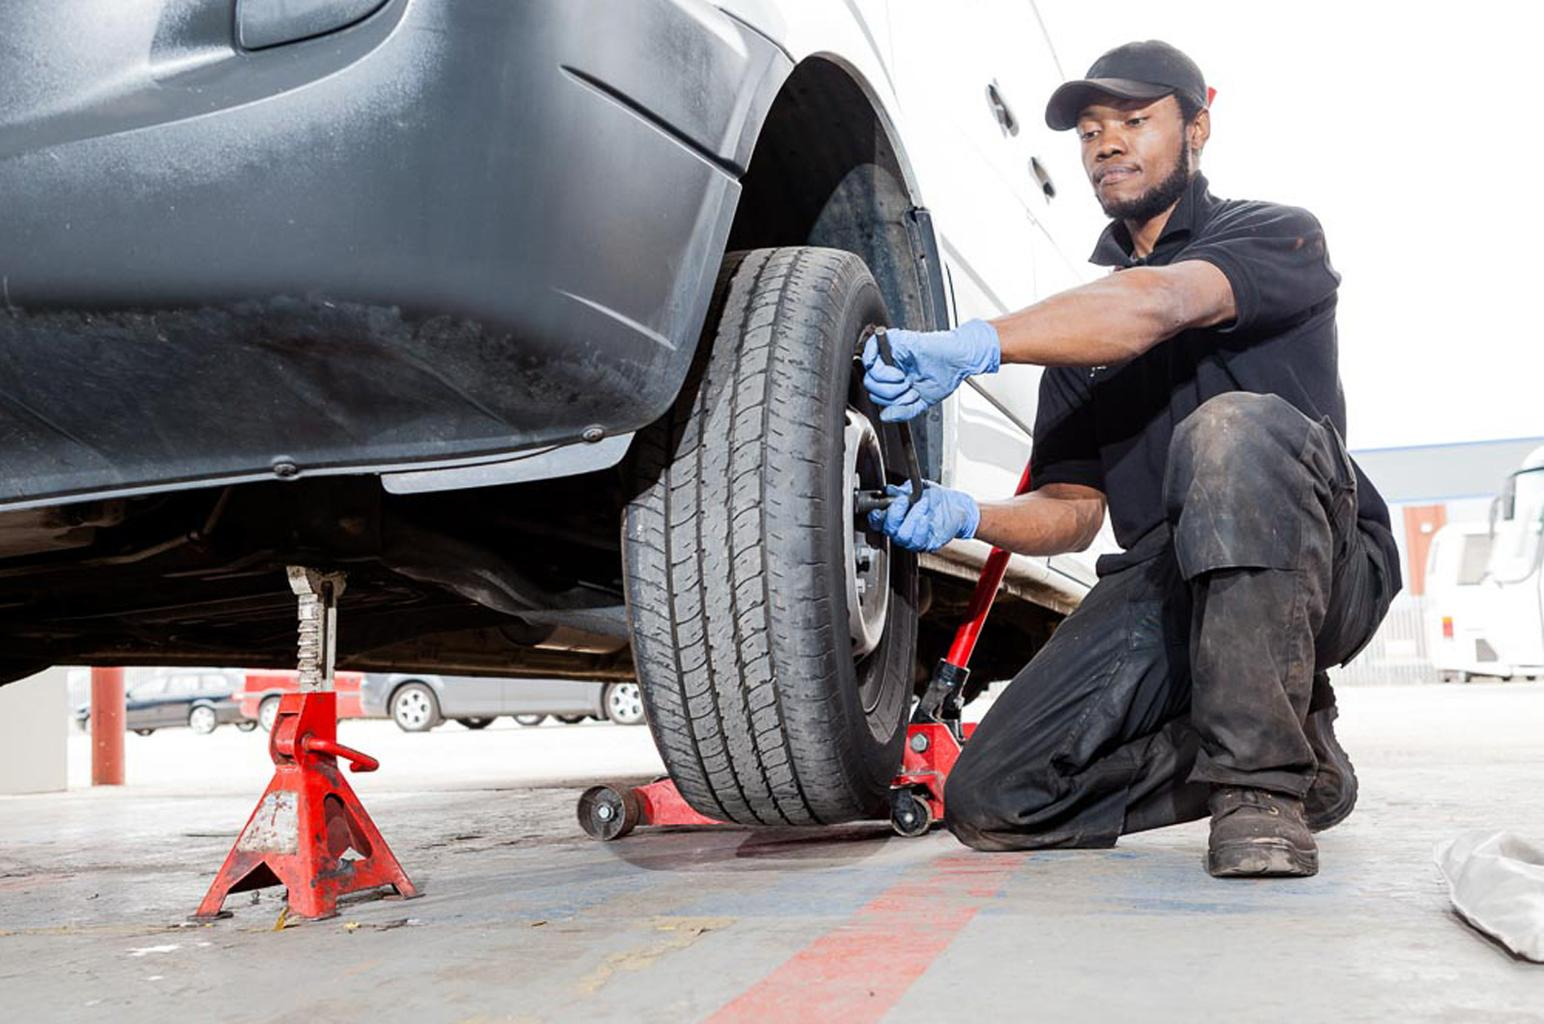 Half of motorists don't check their car before taking it on holiday